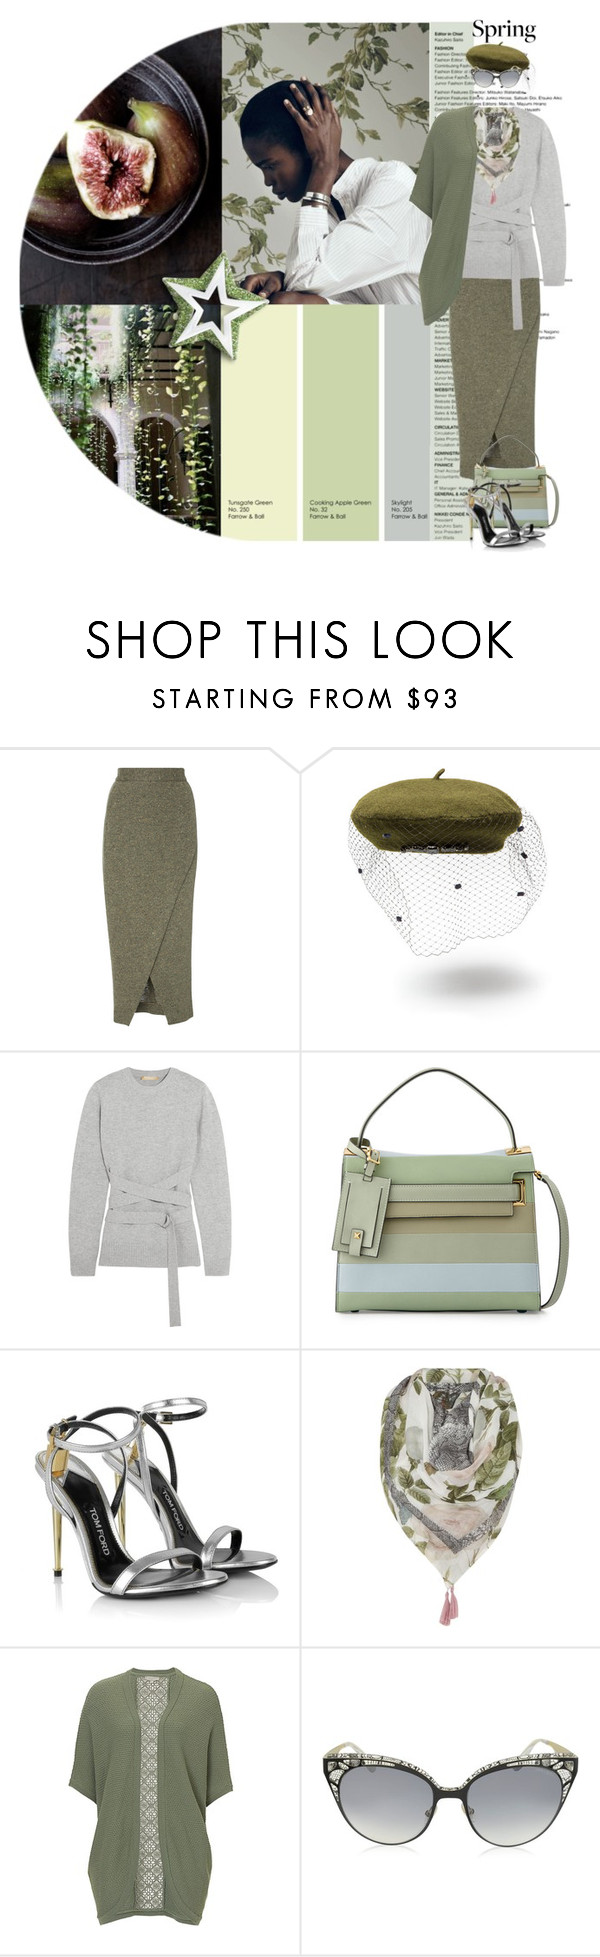 """One Always Loves the Person Who Understands You"" by terrelyn-thomas-no-tags ❤ liked on Polyvore featuring Radà, Michael Kors, Valentino, Tom Ford, Oui, Jimmy Choo and parisienneflavor"